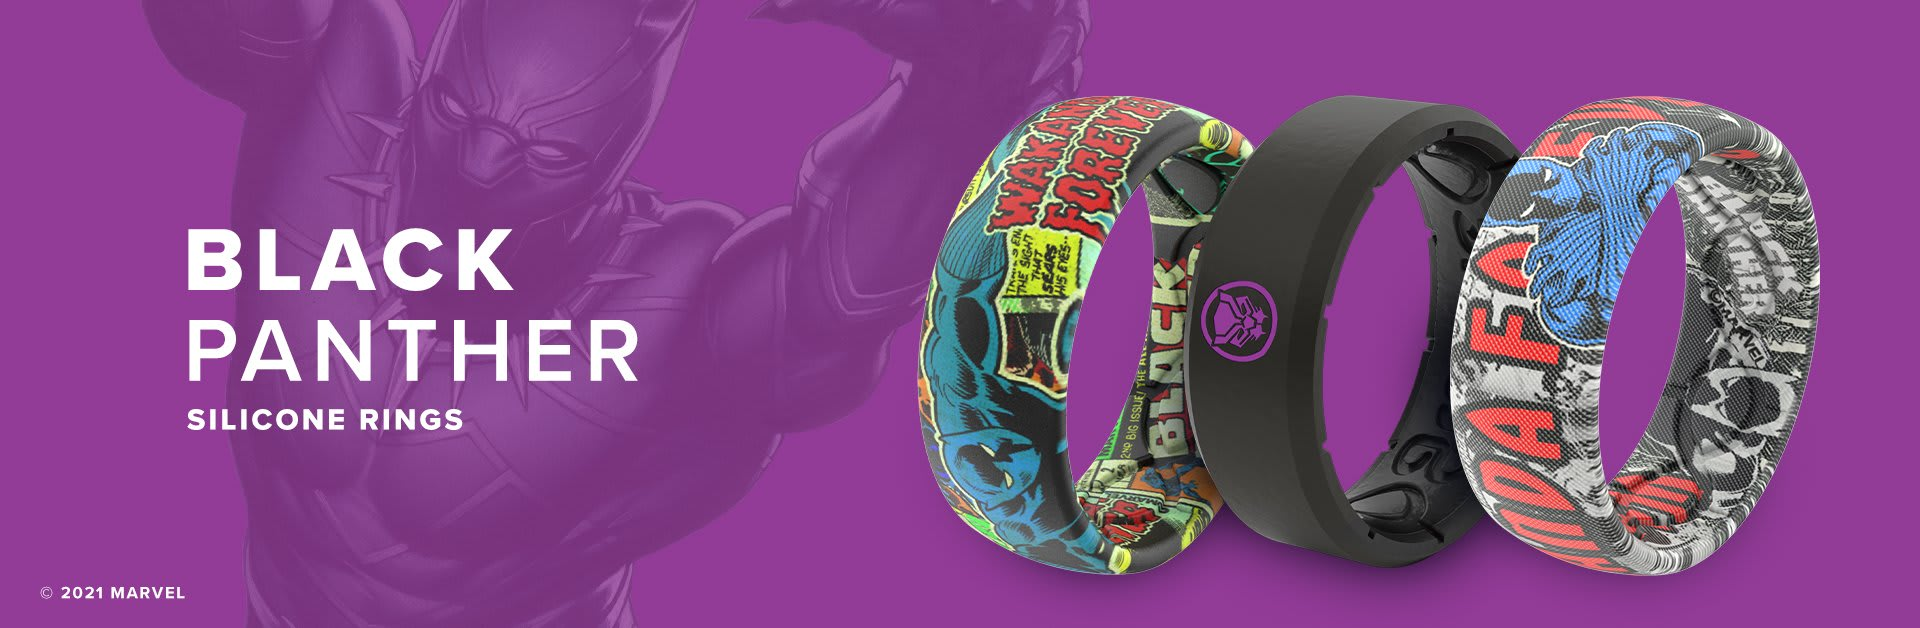 Black Panther Silicone Rings